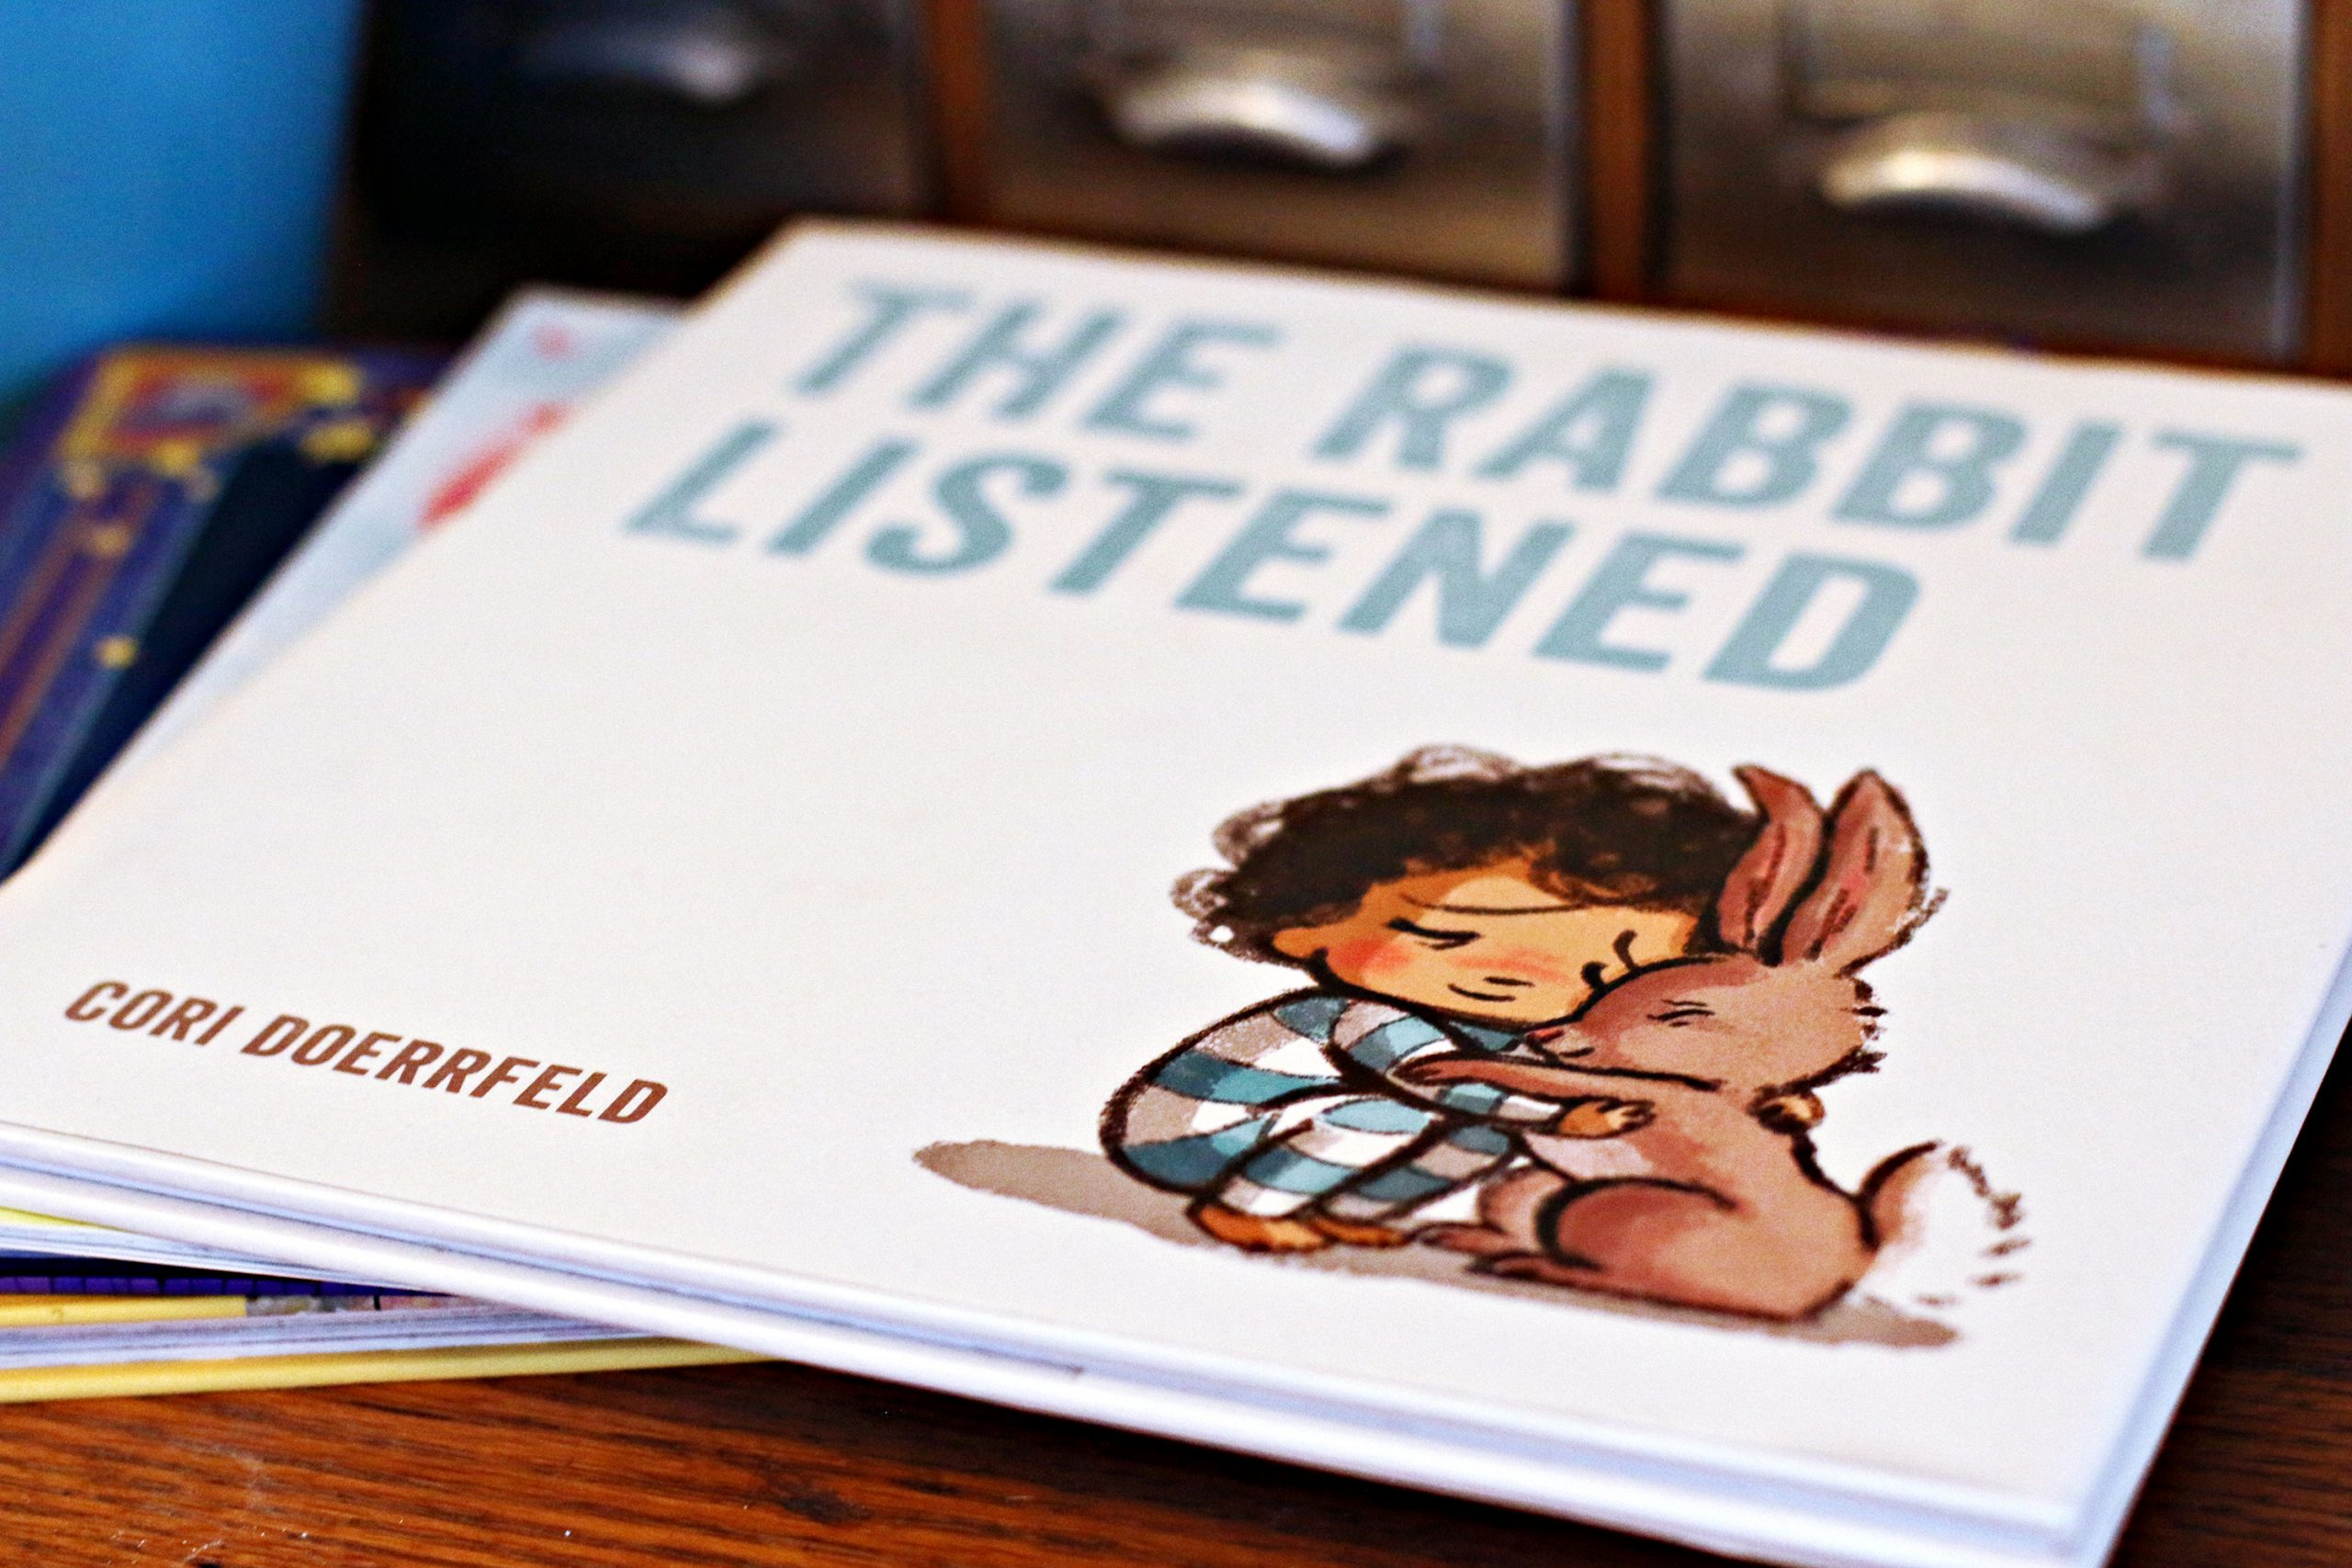 A close-up of the children's book, The Rabbit Listened, by Cori Doerrfeld.